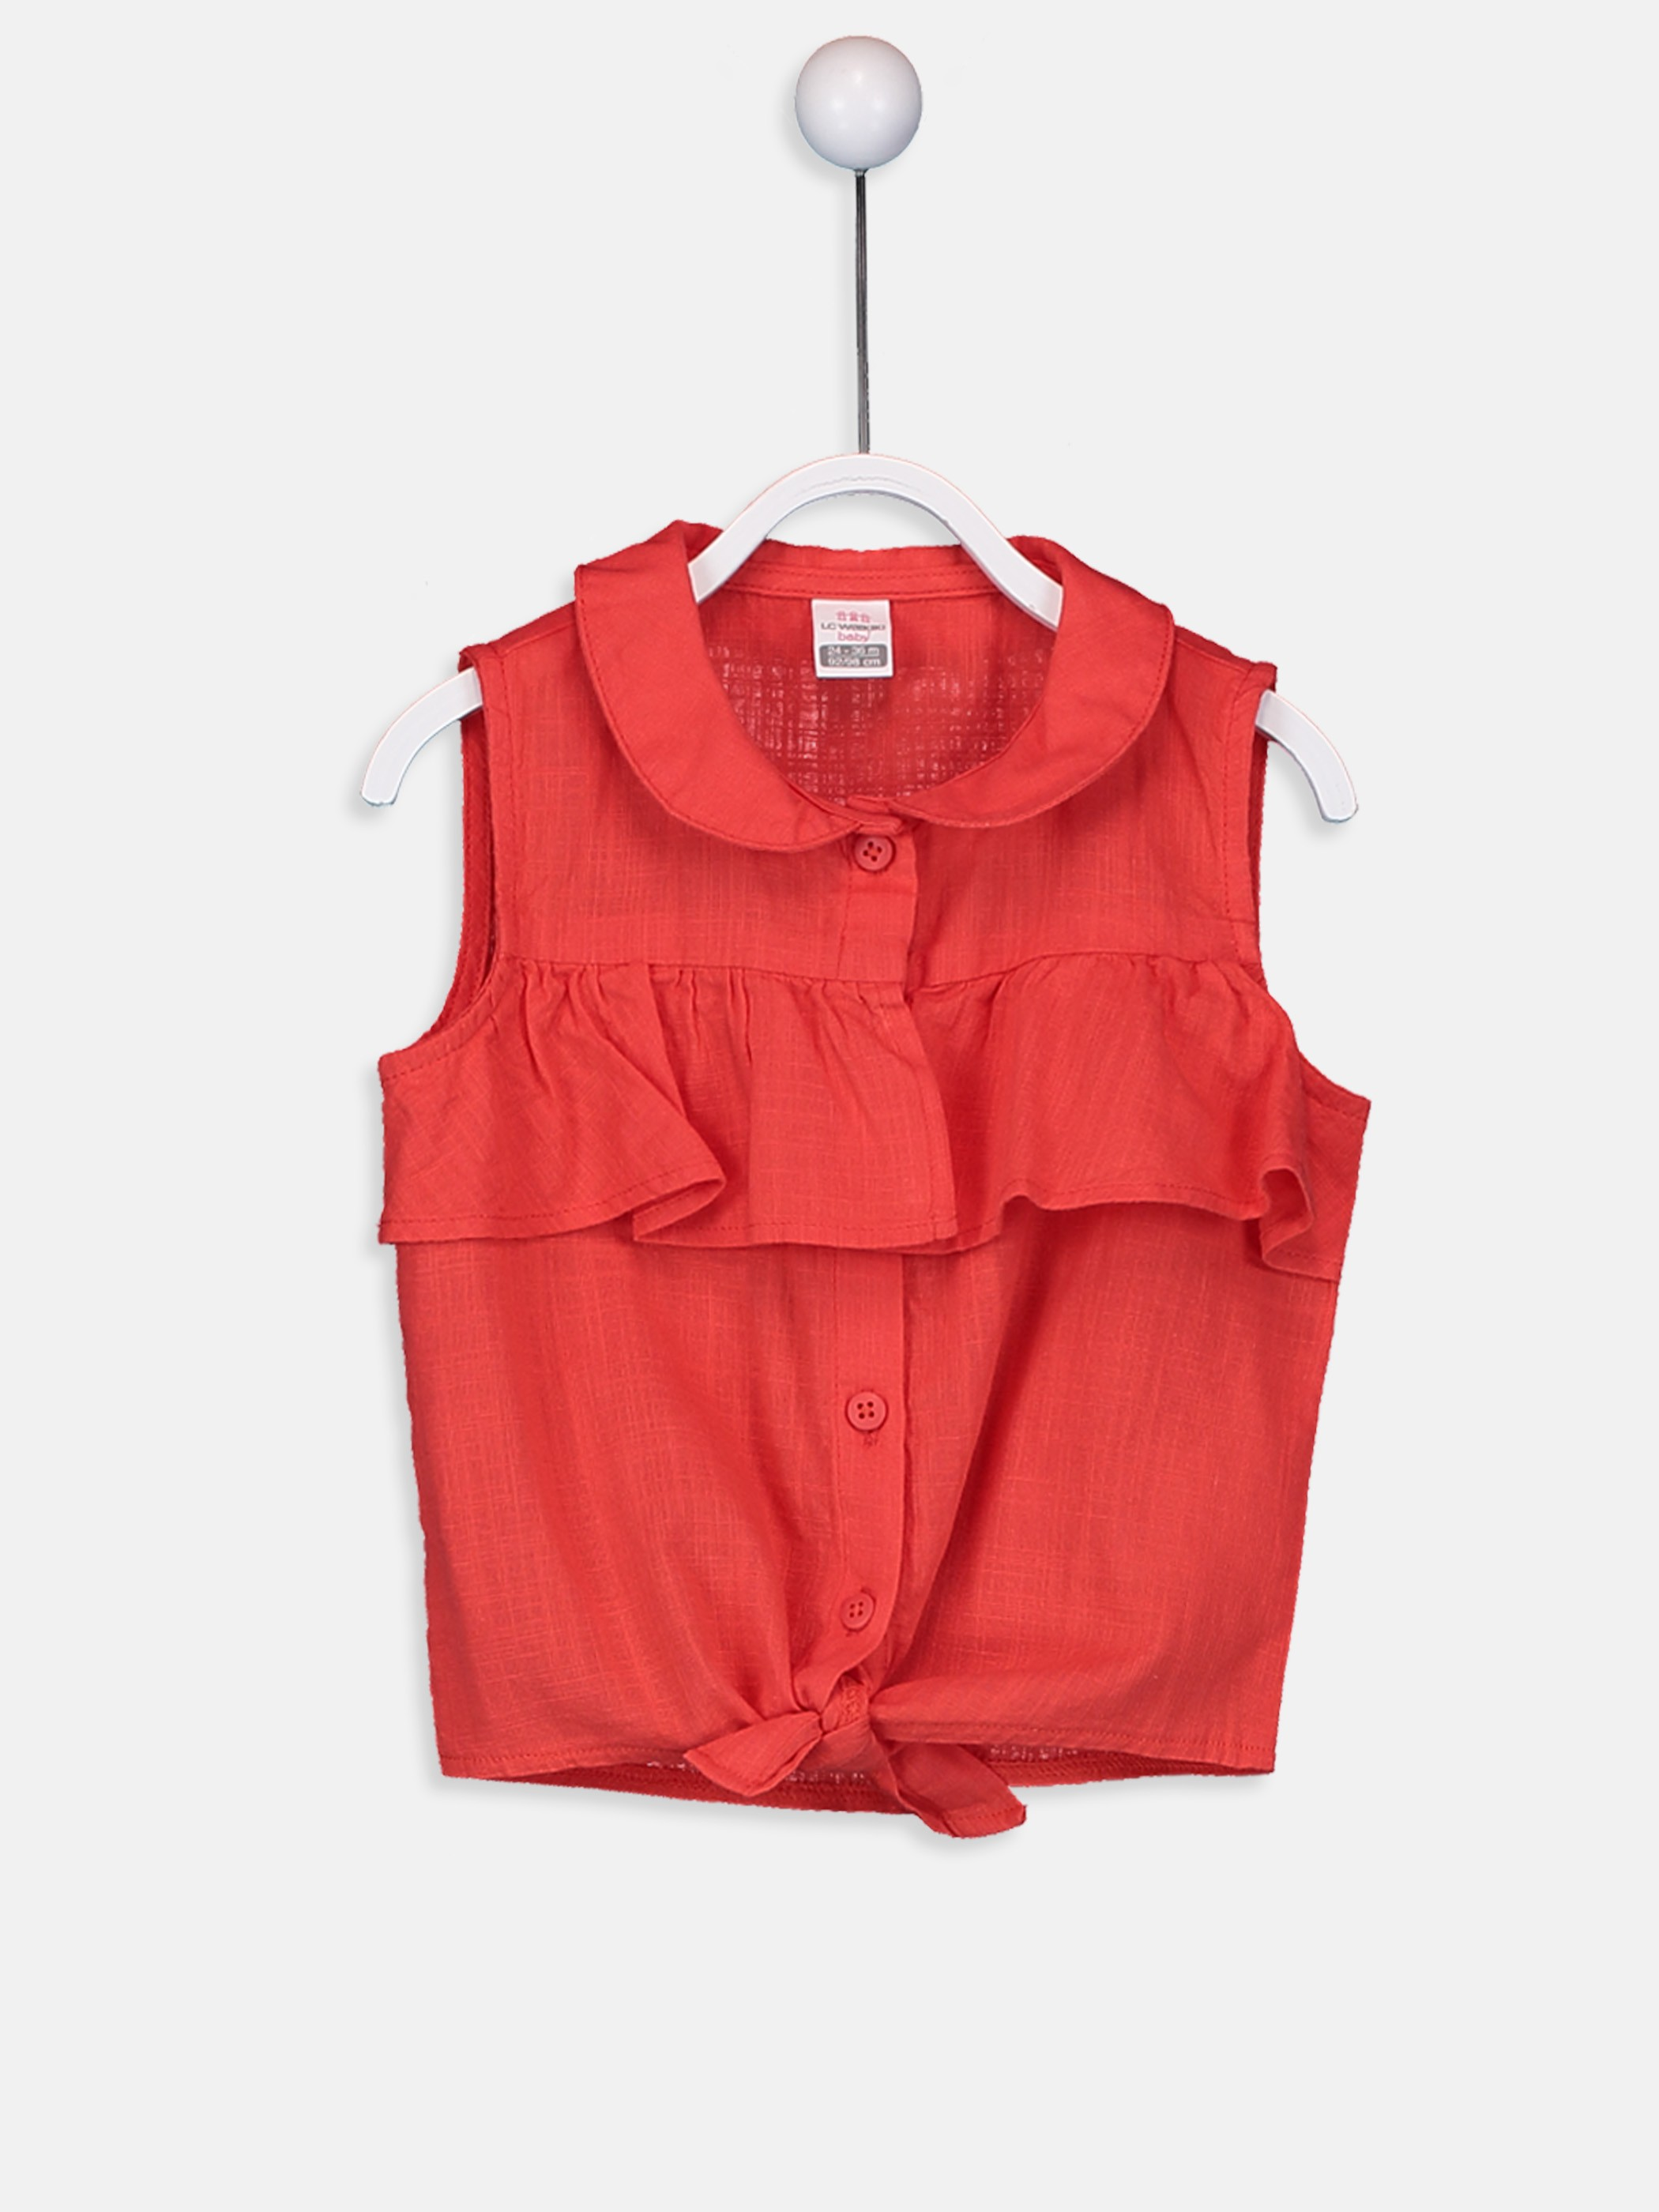 RED - Shirt - 9SY723Z1